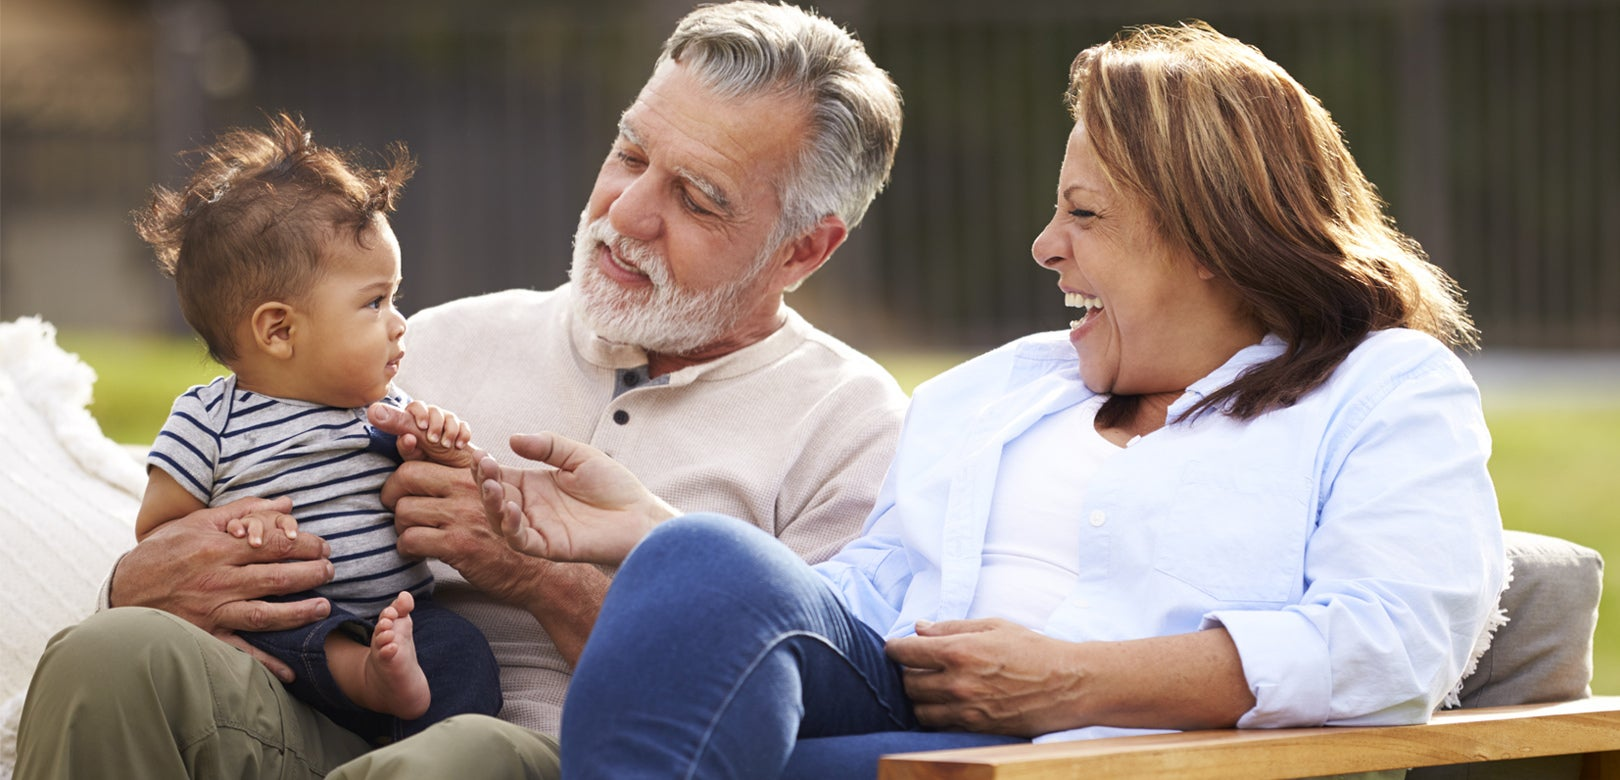 10 tips to help those living with arthritis